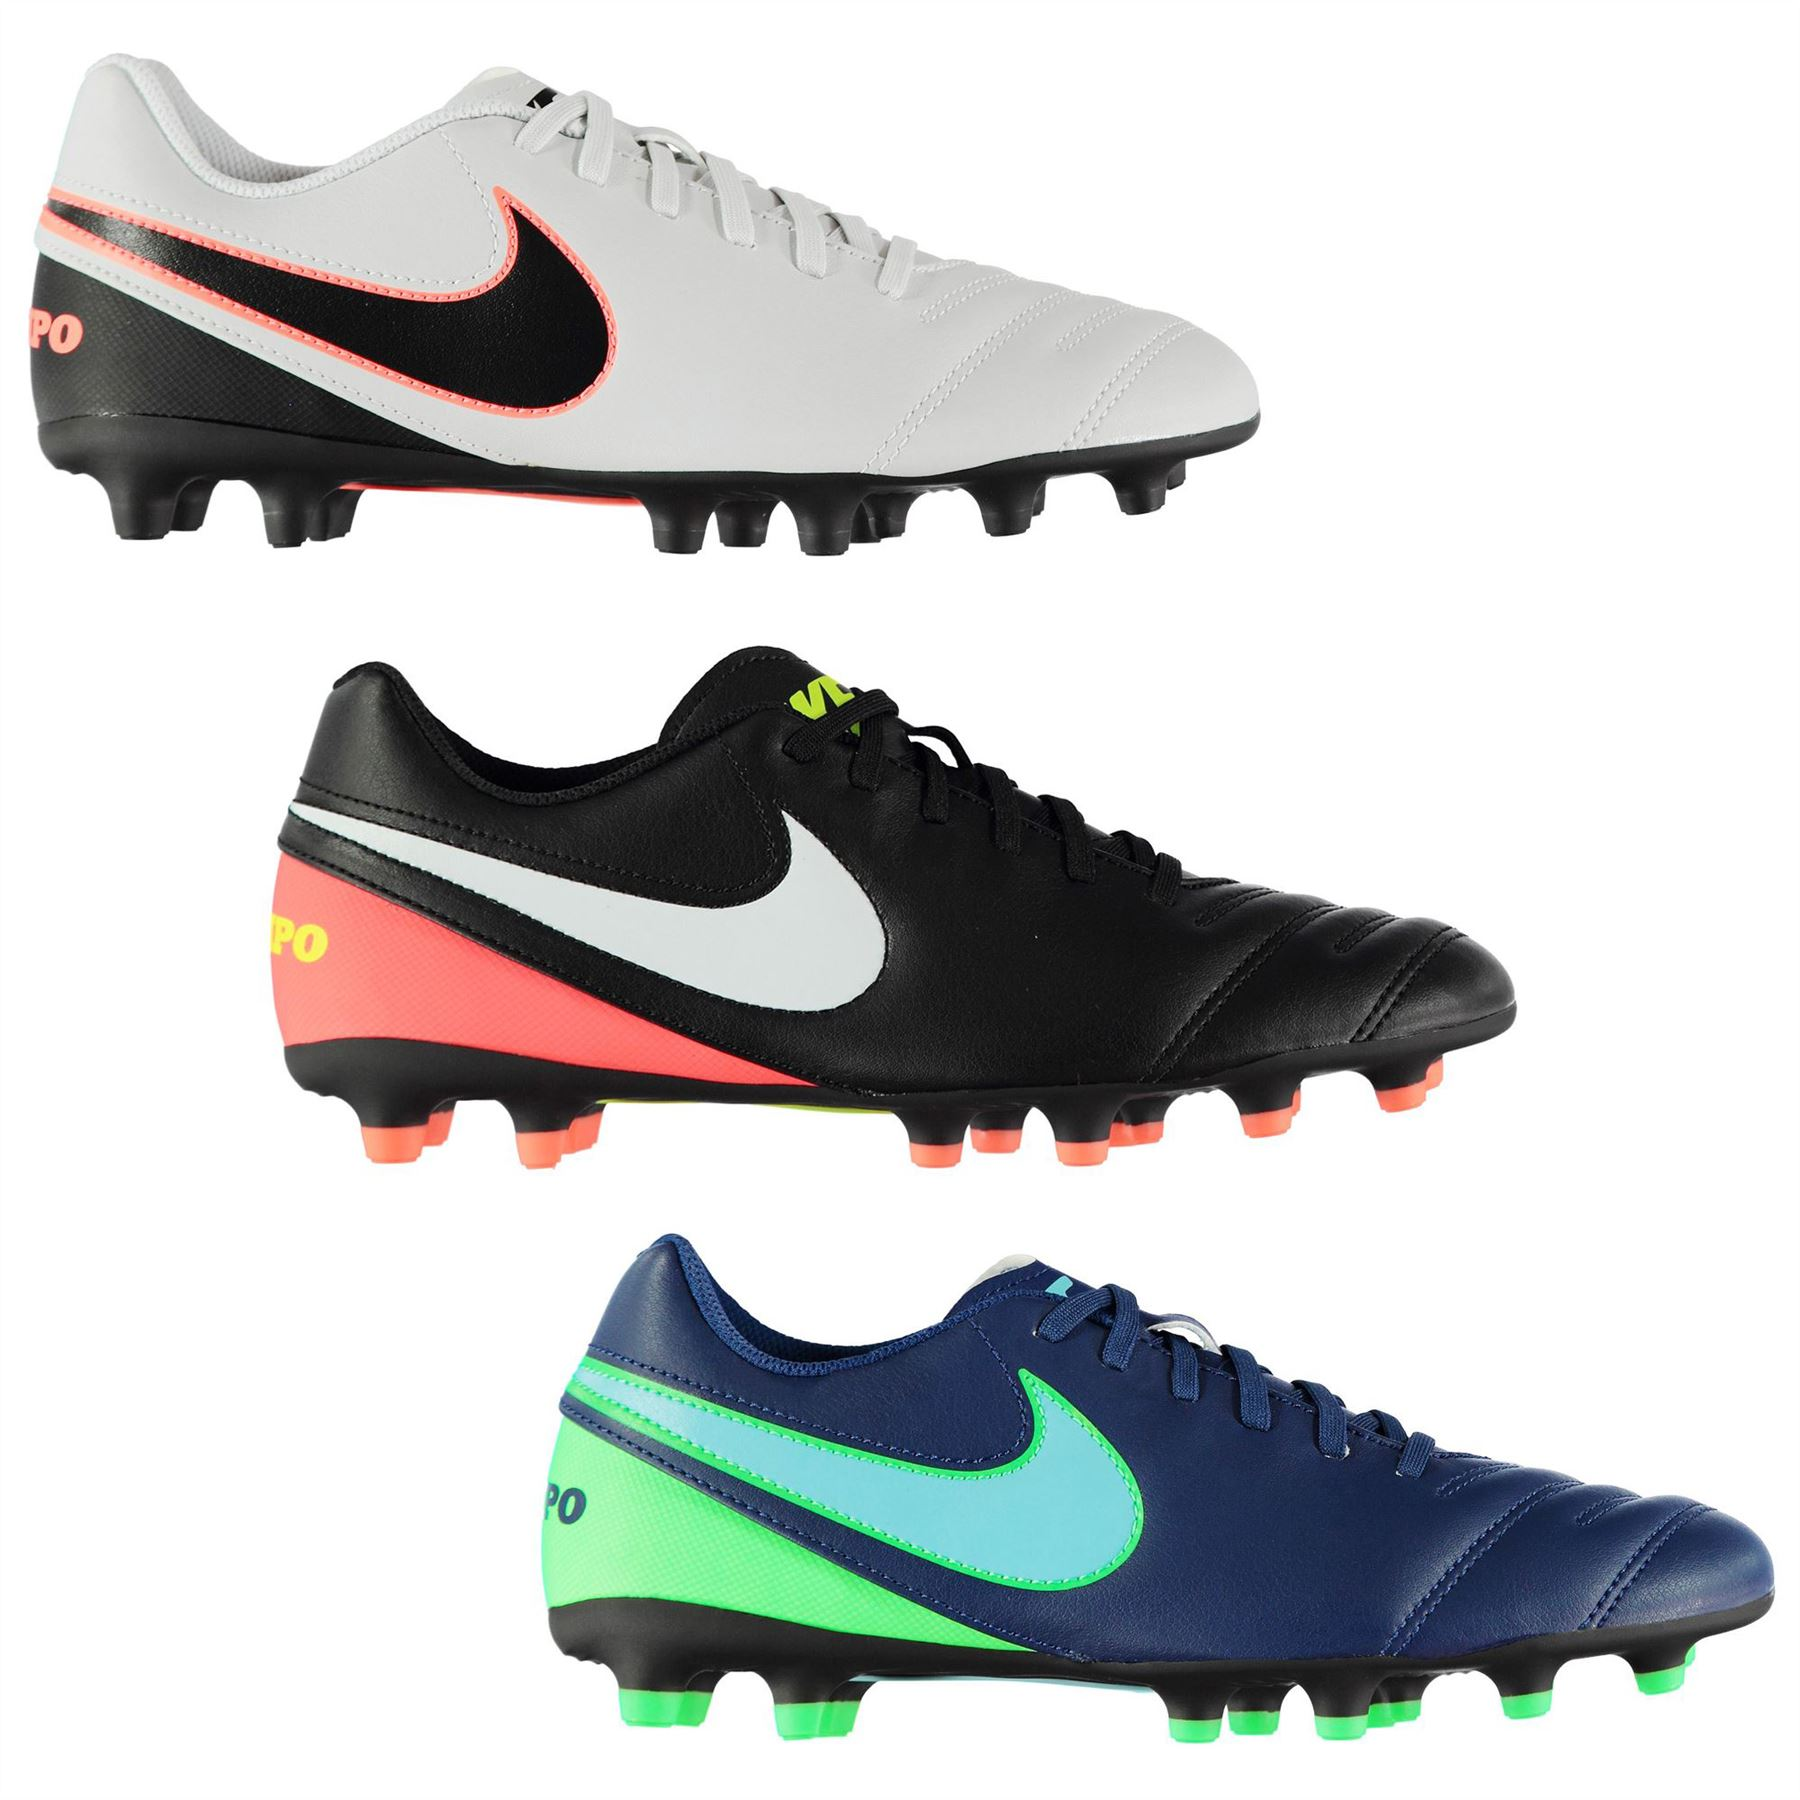 c70f65056e4 ... Nike Tiempo Rio FG Firm Ground Football Boots Mens Soccer Shoes Cleats  ...